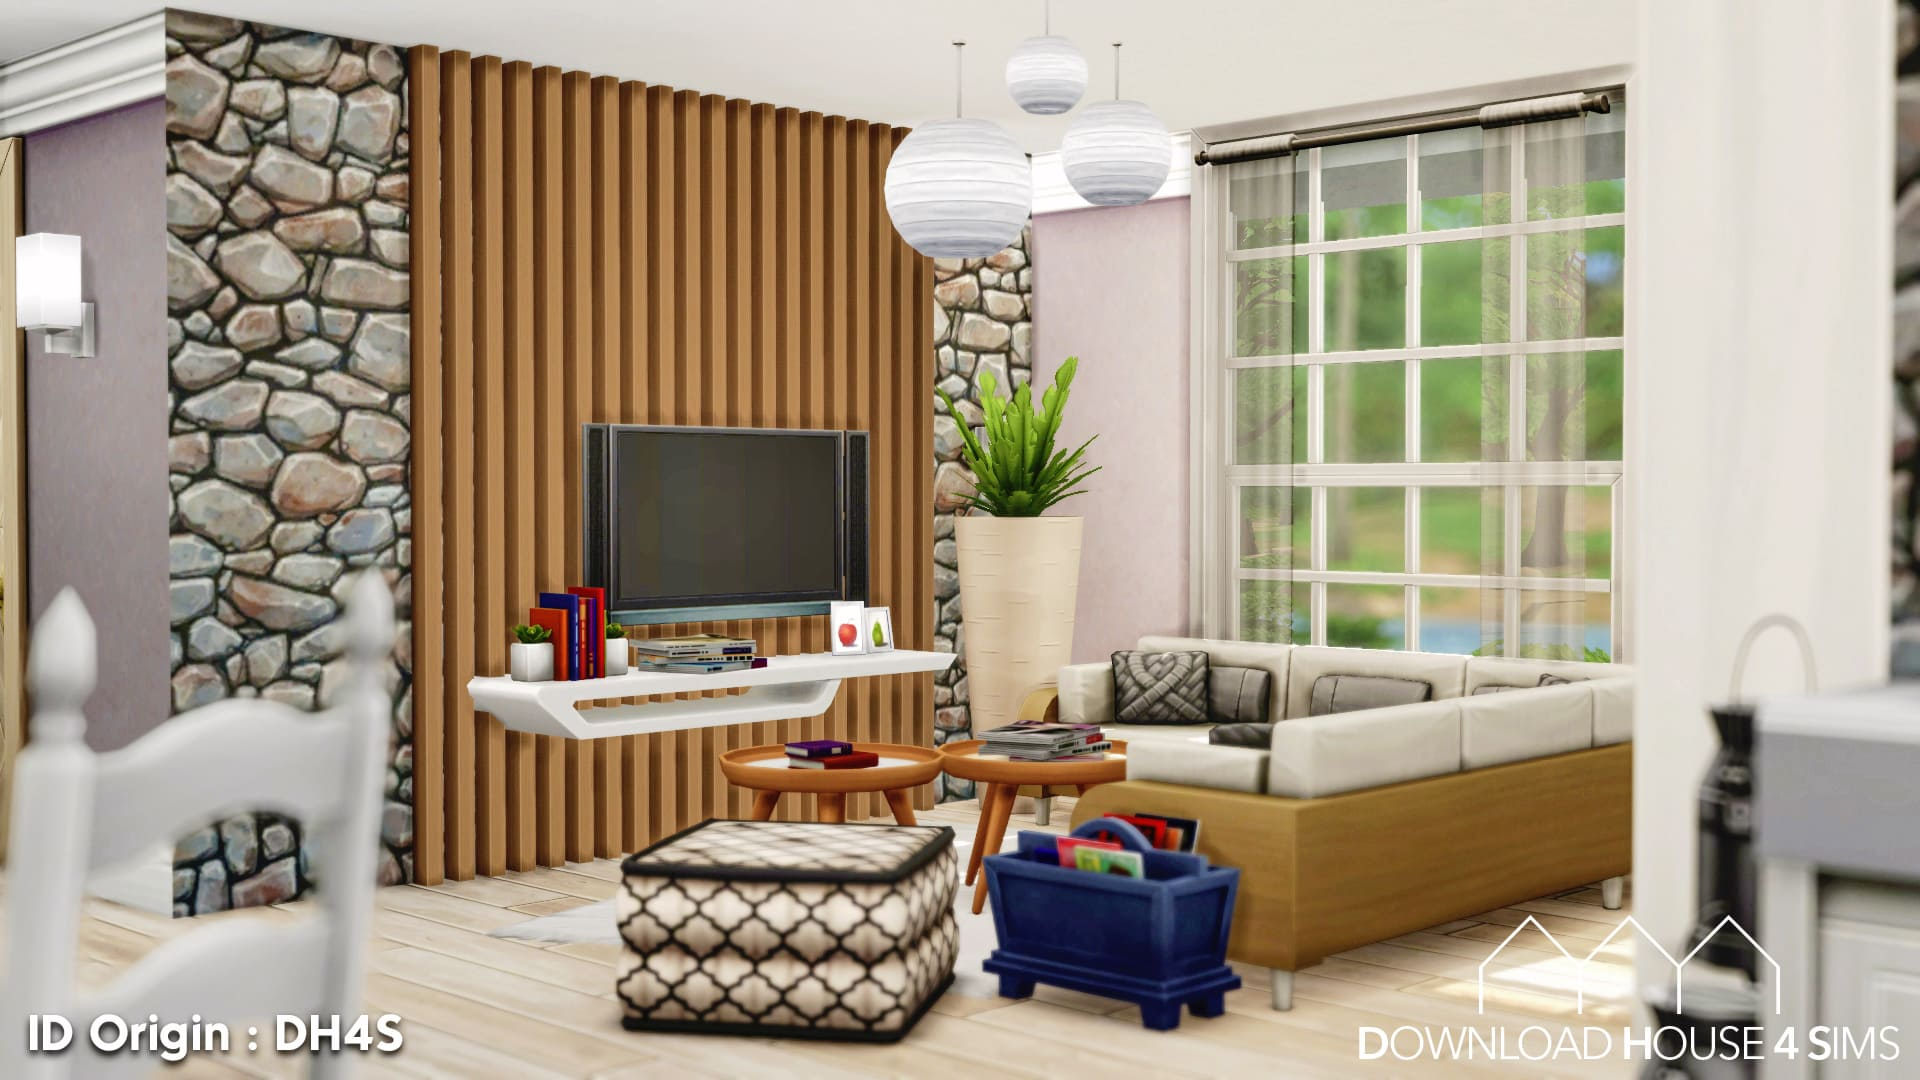 Family-Cottage-Sims-4-DH4S-download-house-4-sims-12